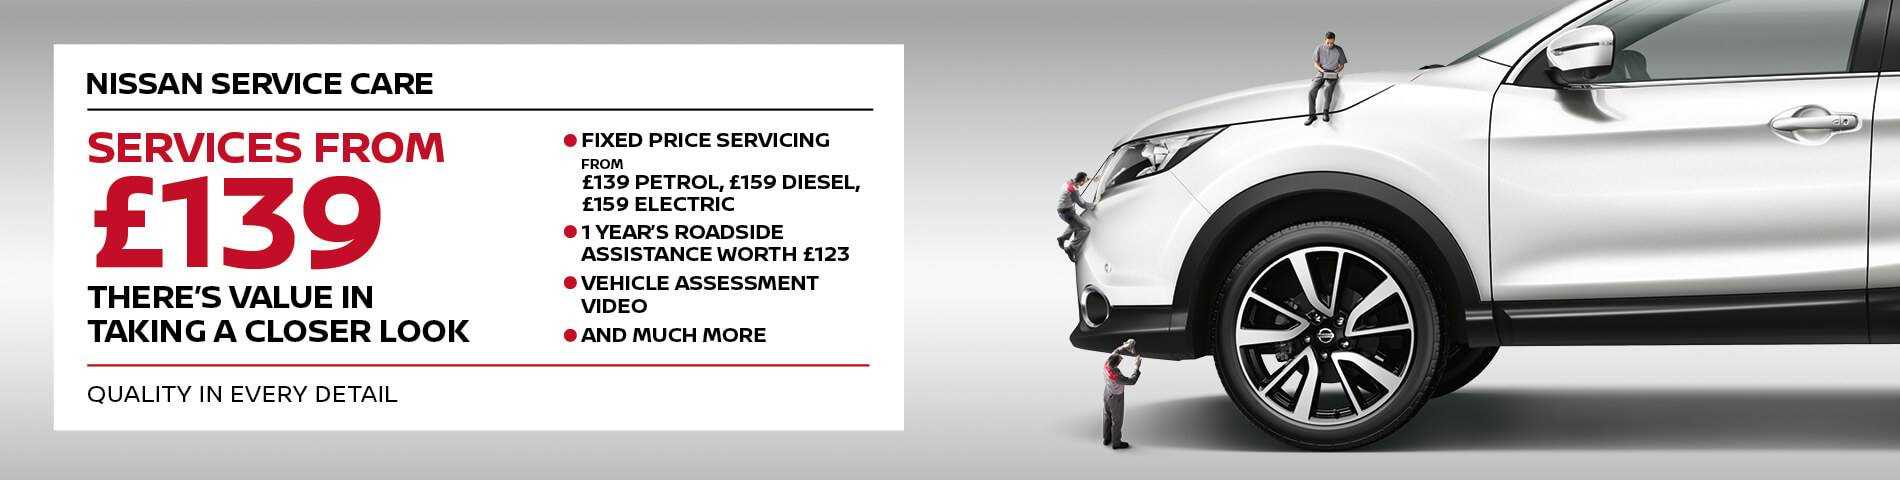 Fixed Price Servicing